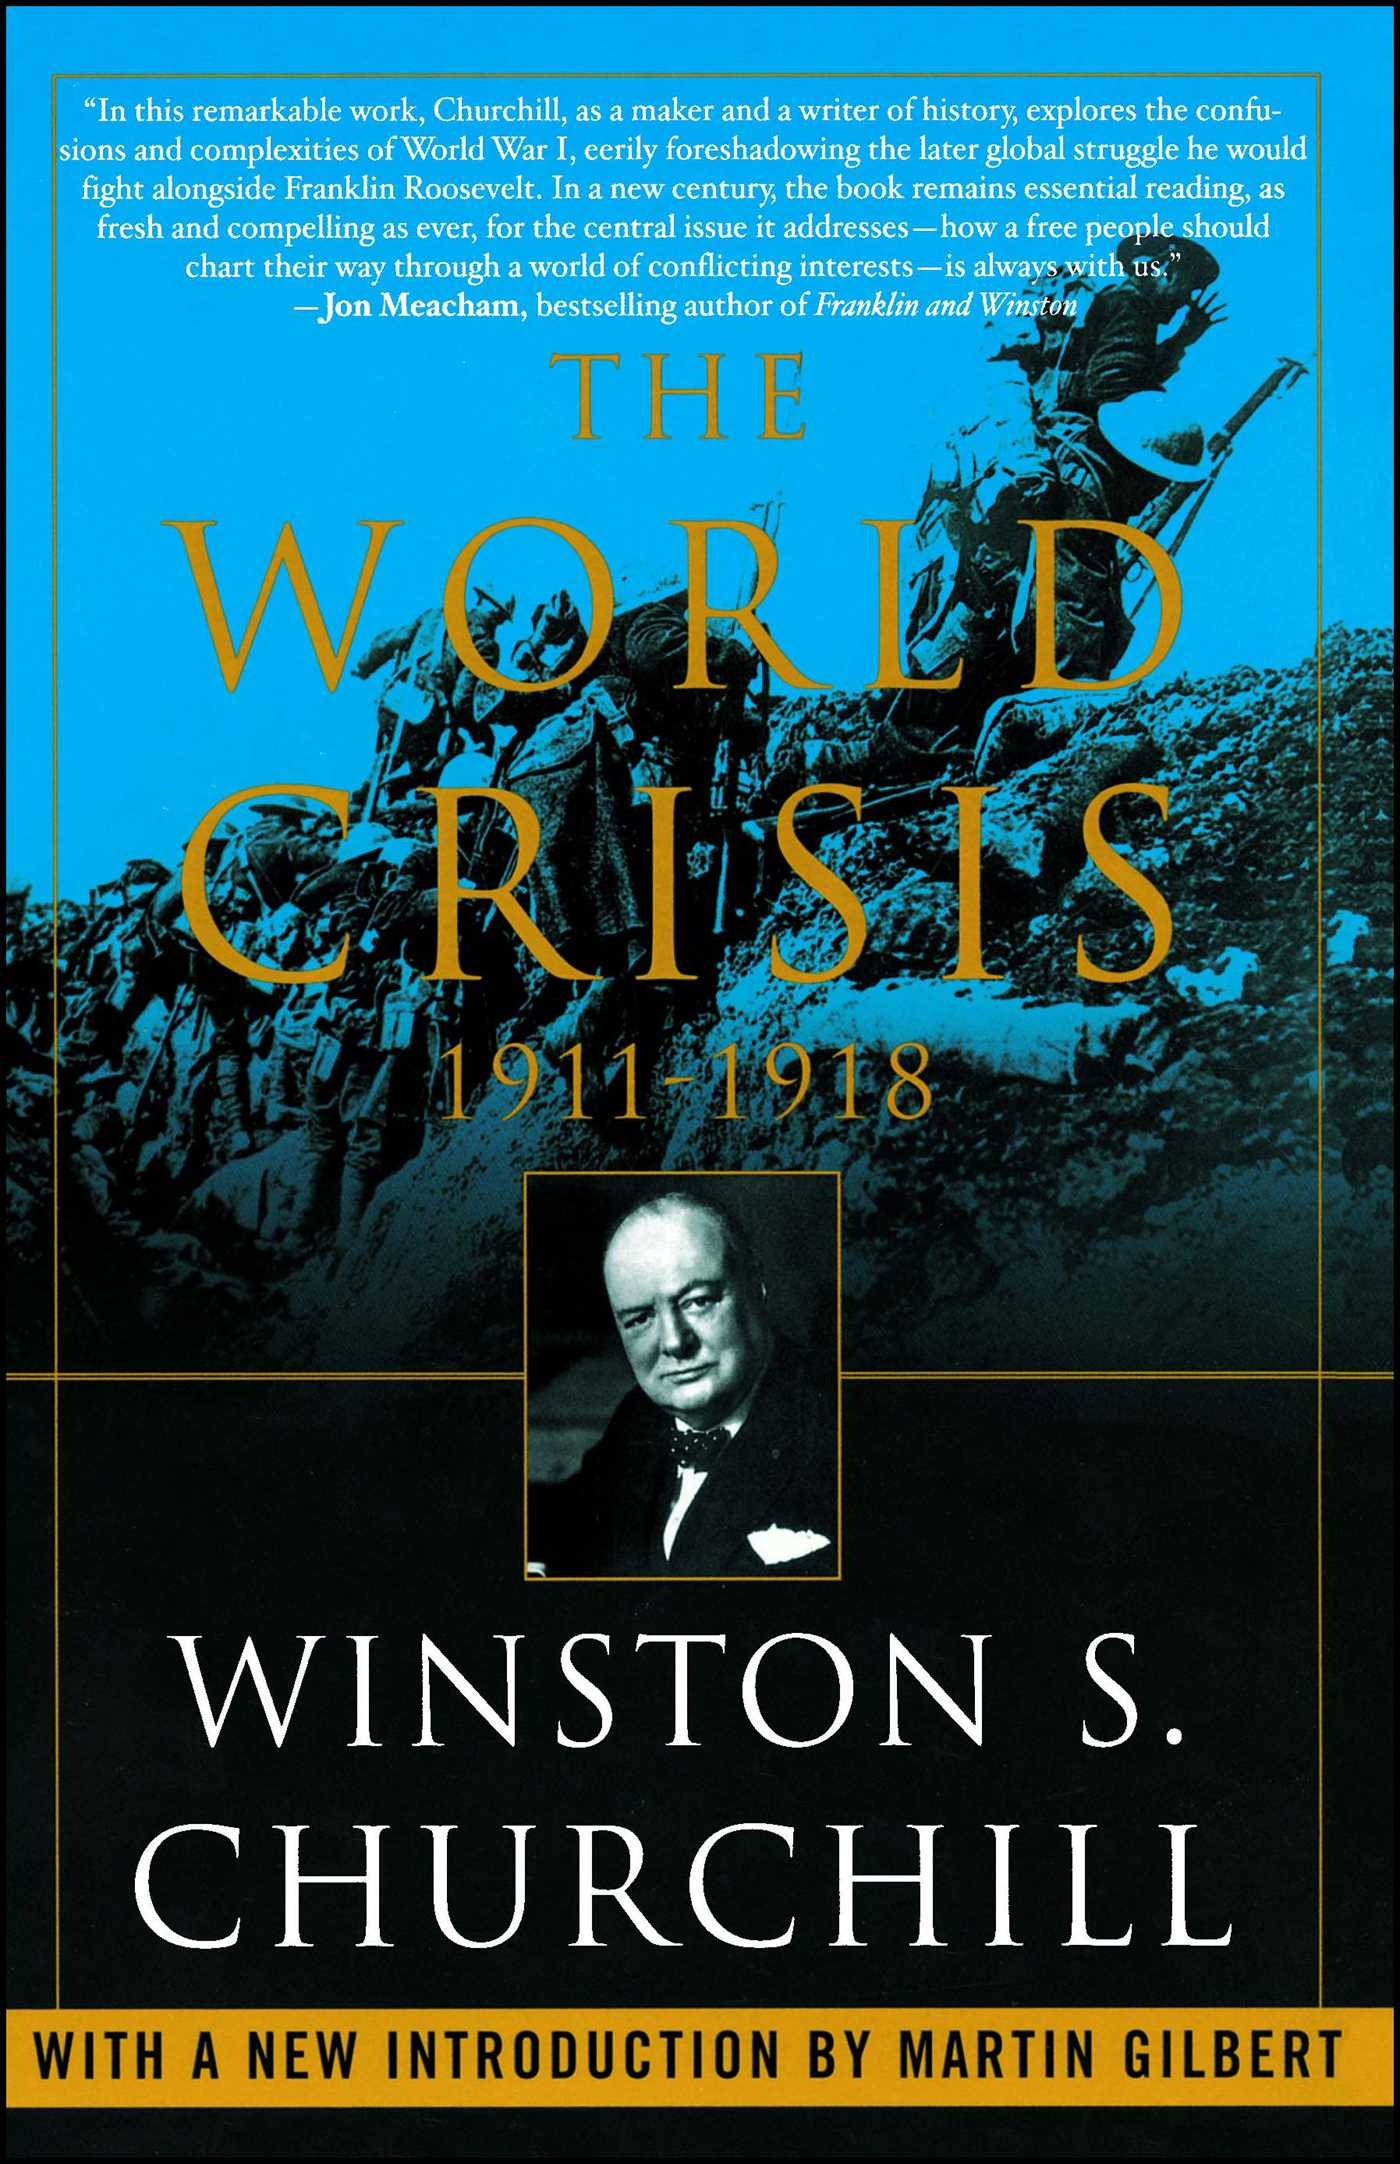 Image result for the world crisis winston churchill book cover